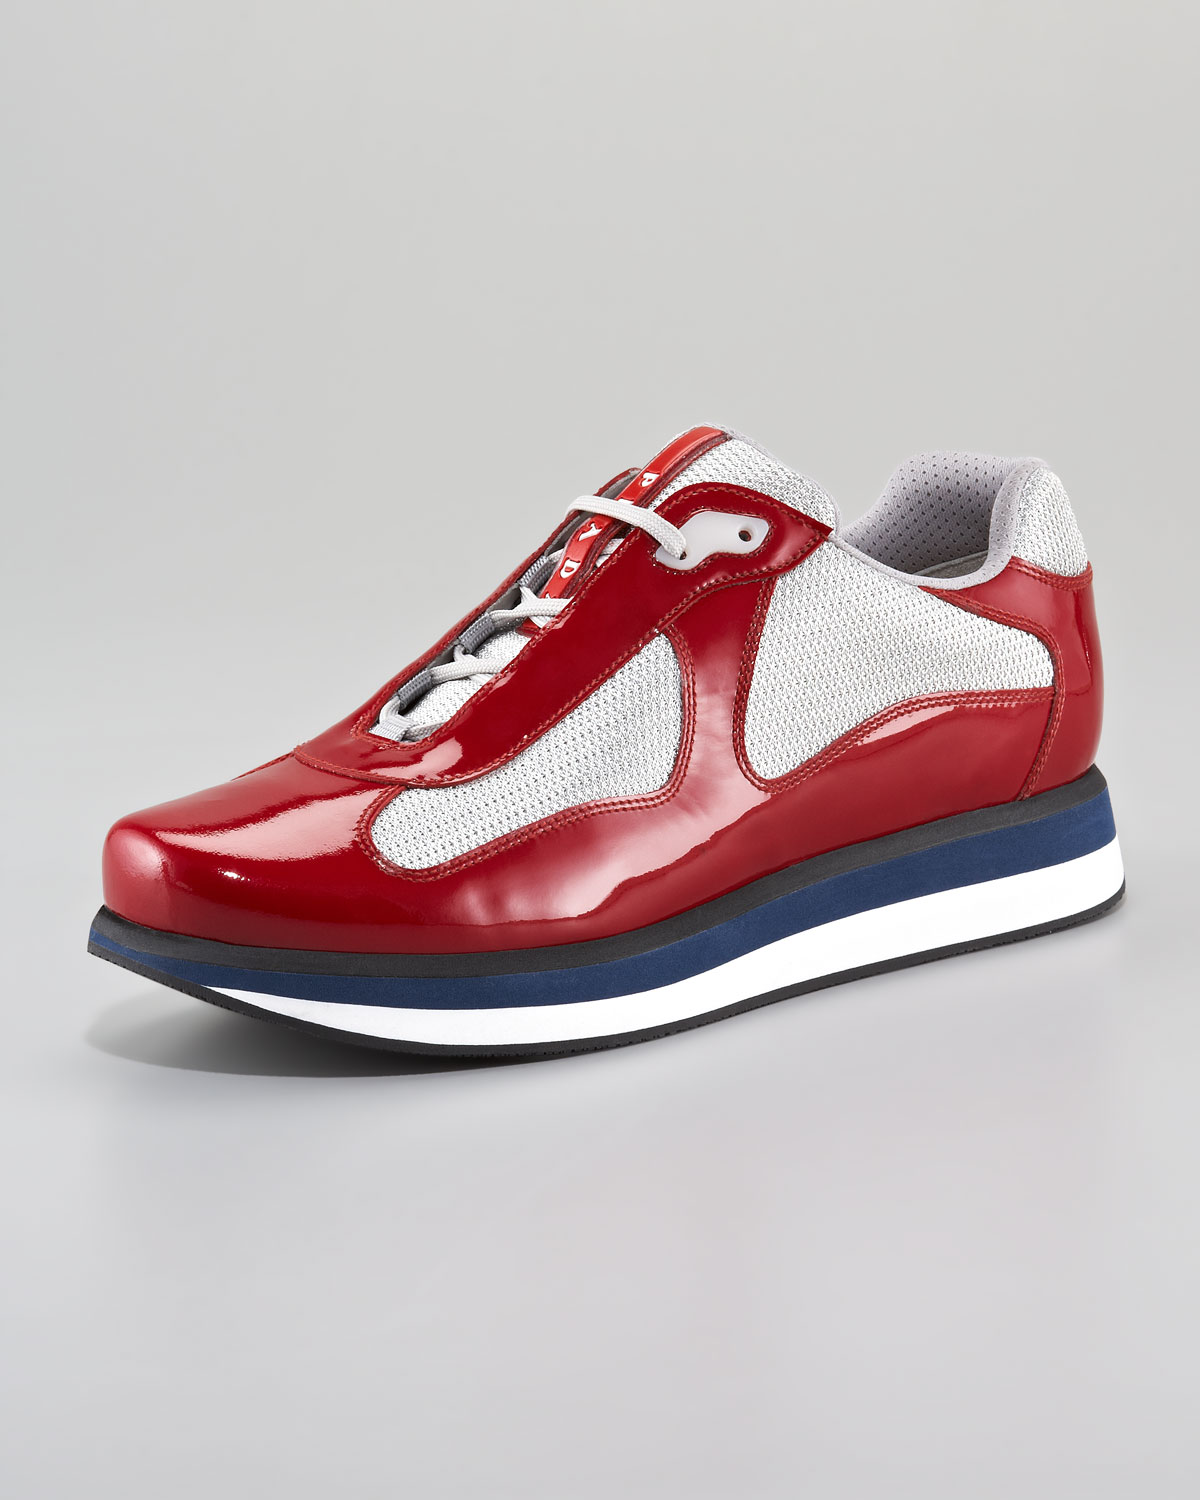 Prada Americas Cup Sneaker Redsilver In Red For Men Lyst